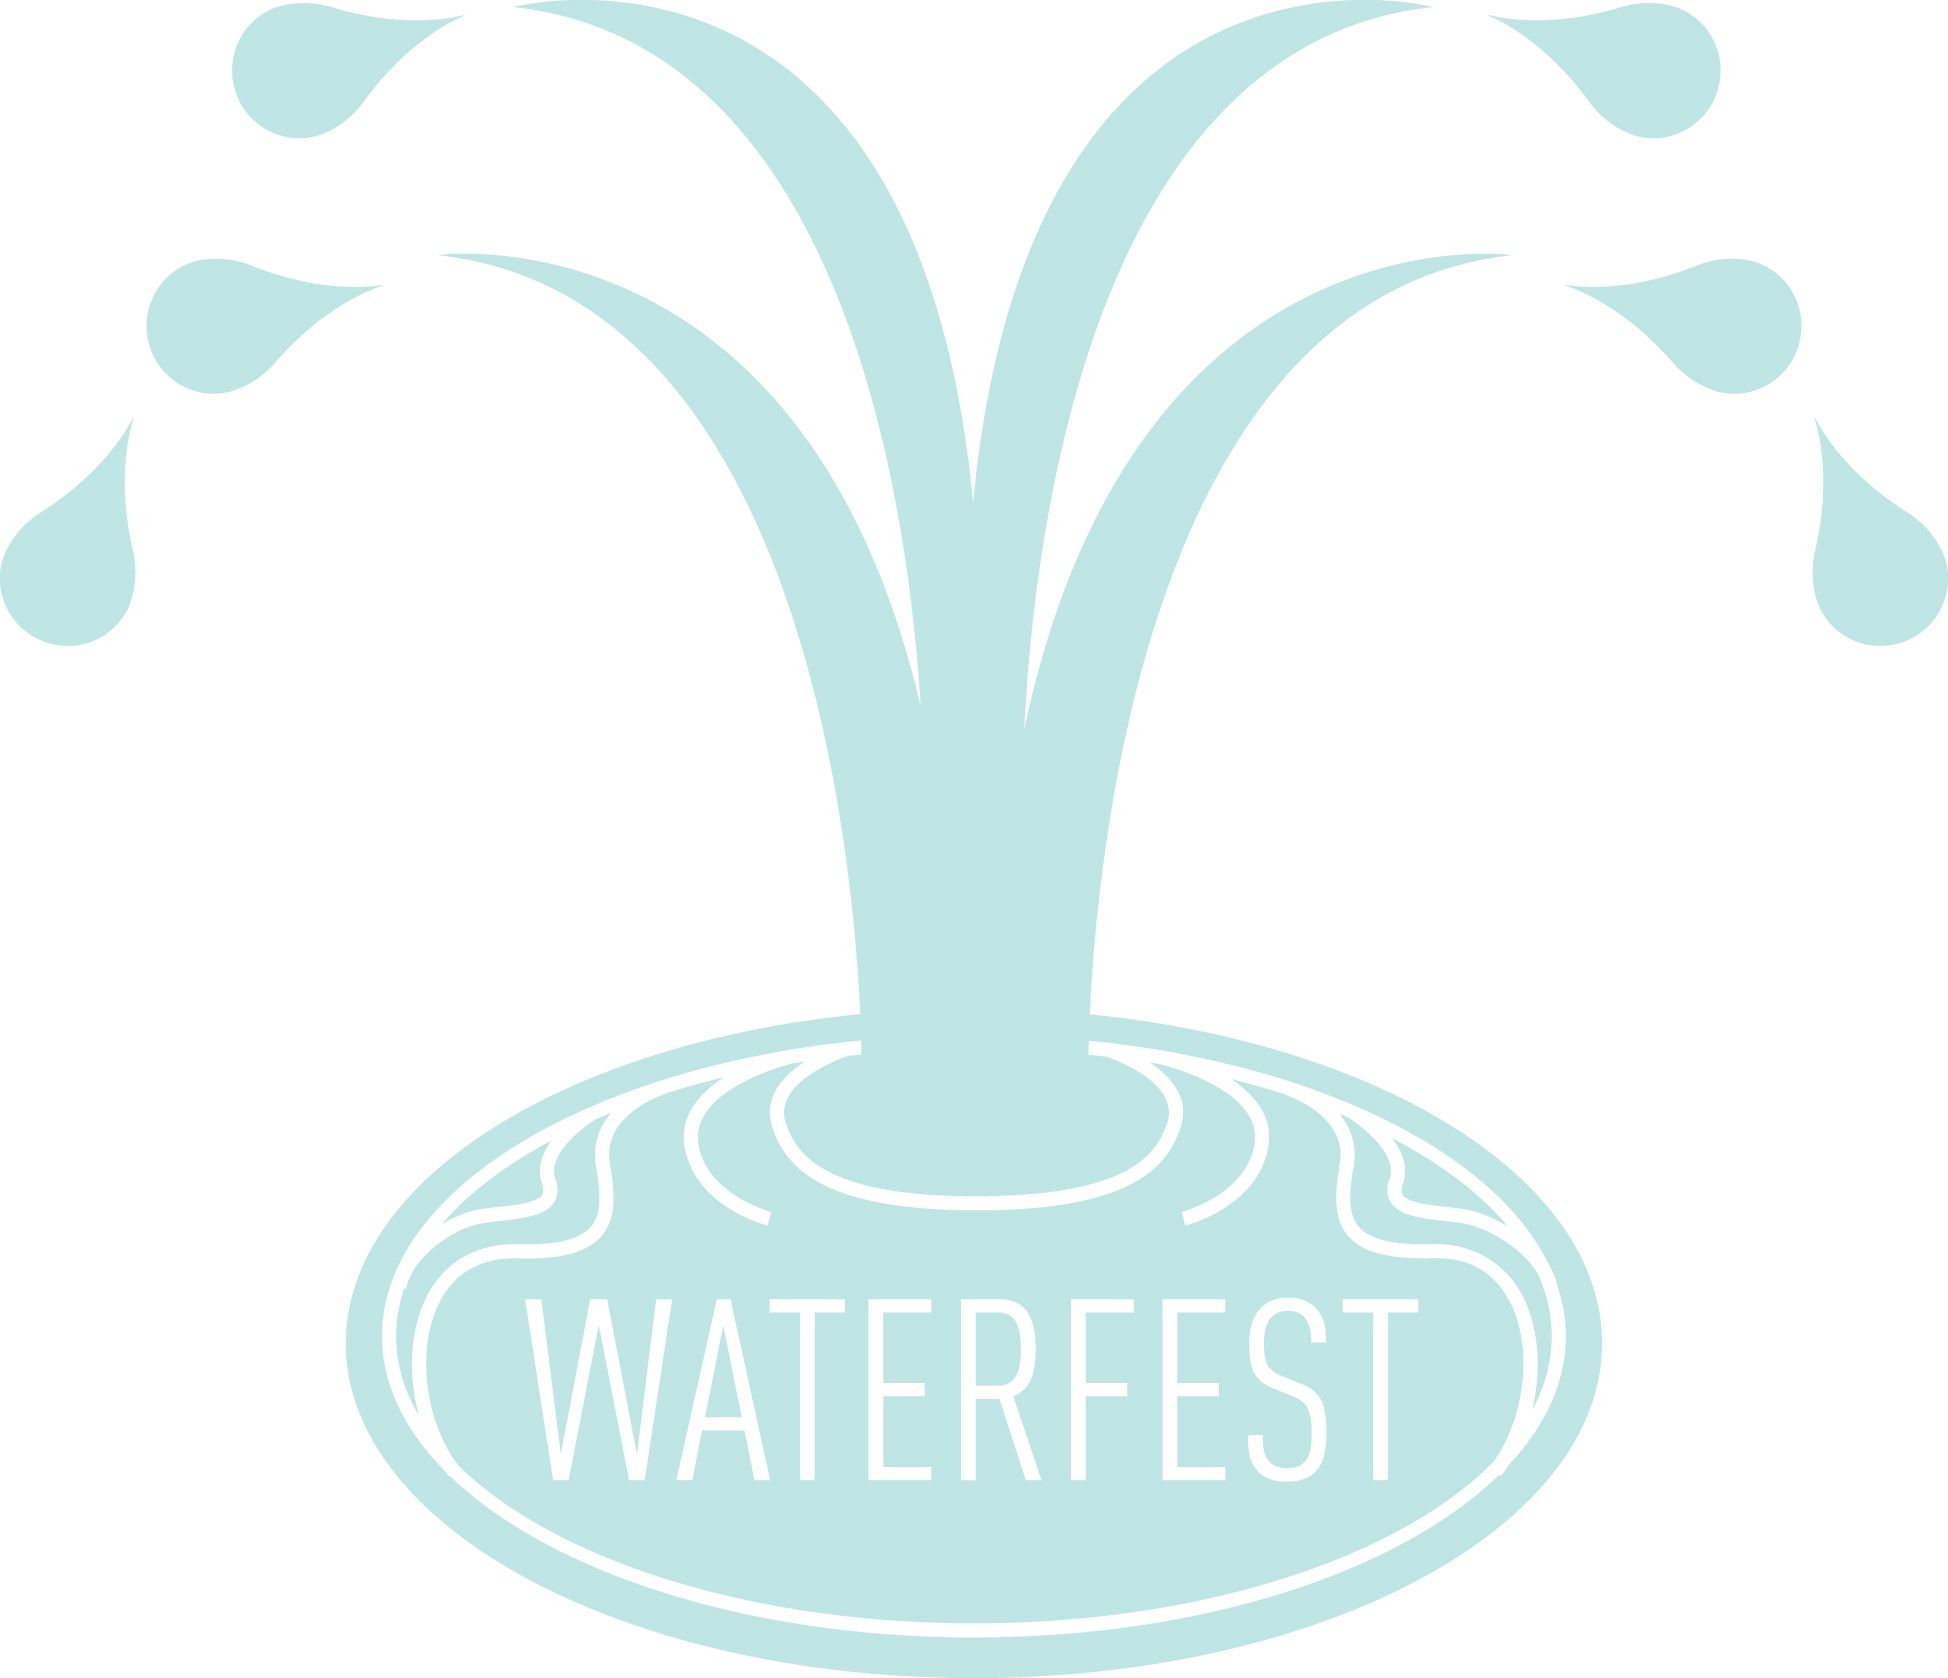 waterfest logo light blue pond with water droplets splashing up like a fountain